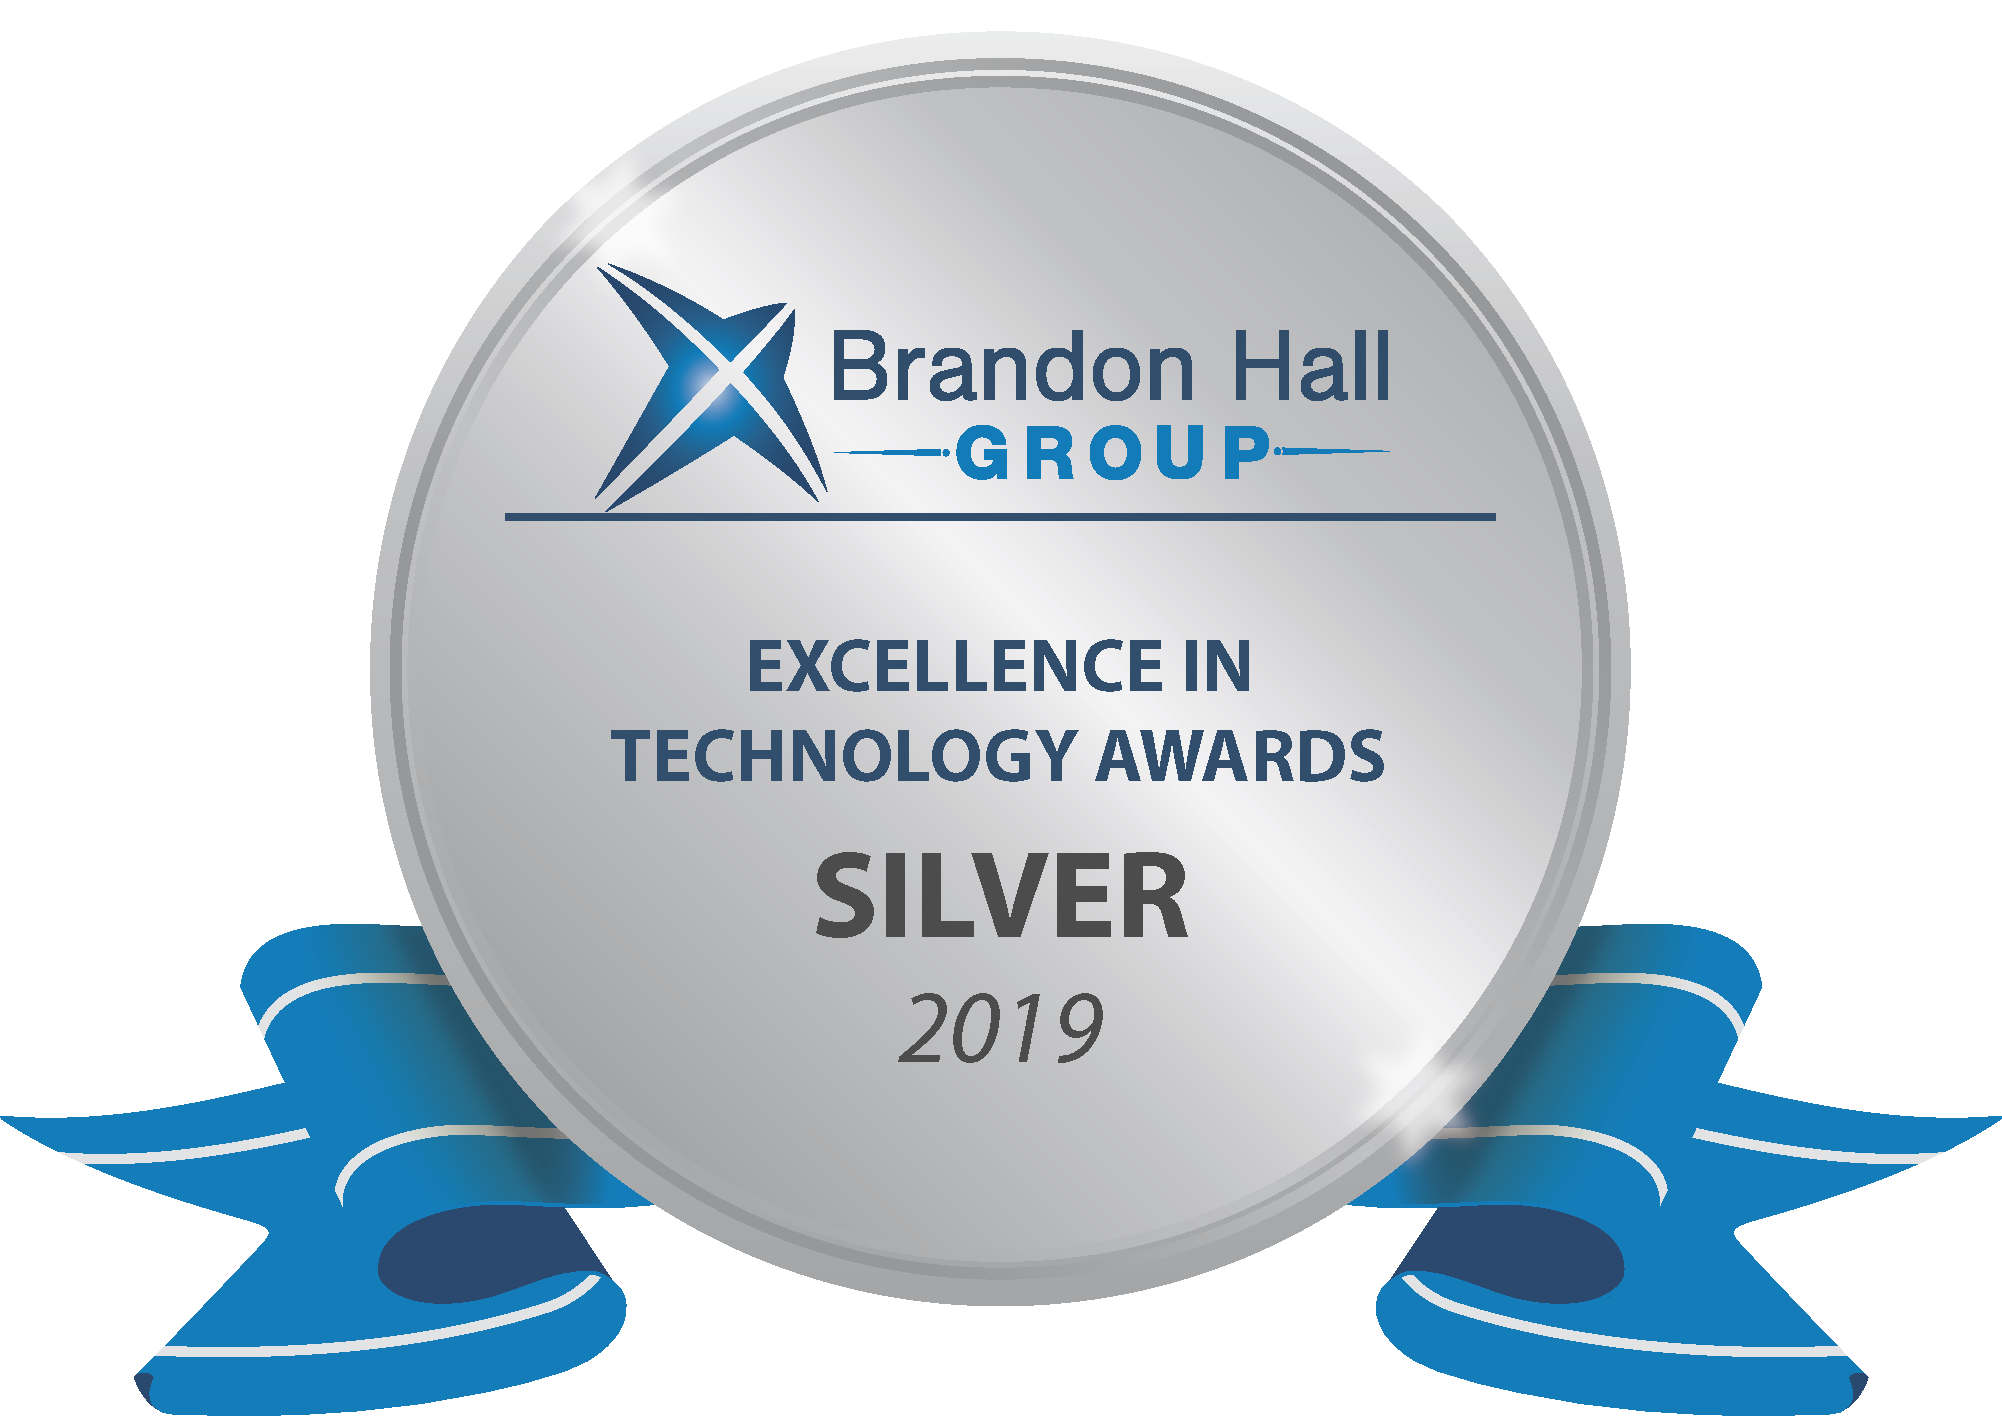 Best Advance in Mobile Learning Technology 2019- Brandon Hall Group Excellence in Technology Awards